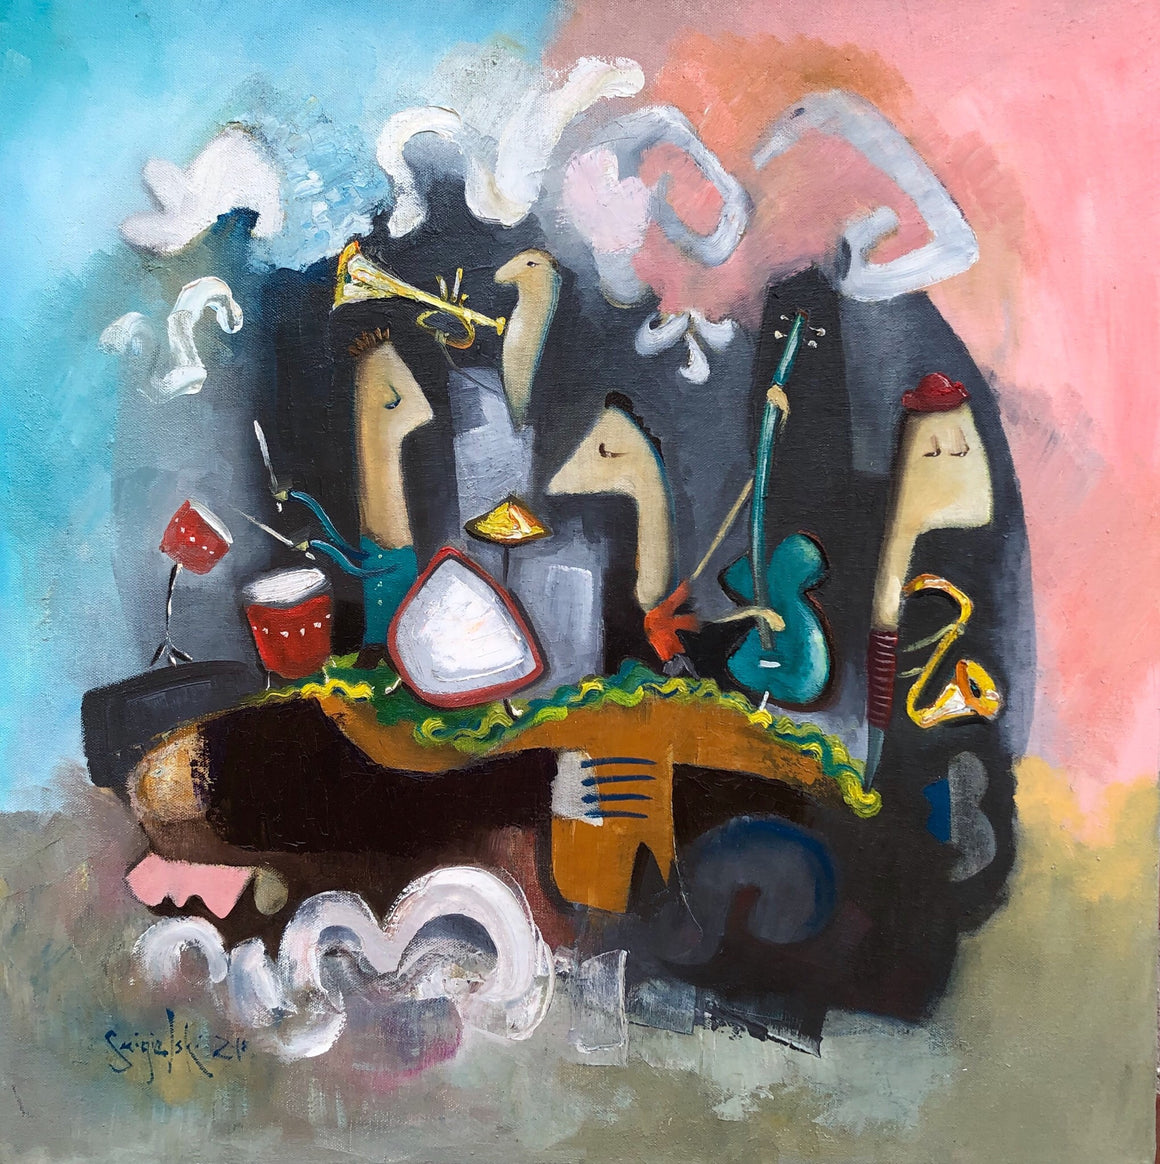 original oil painting of musicians | music art | playing instruments picture | square format